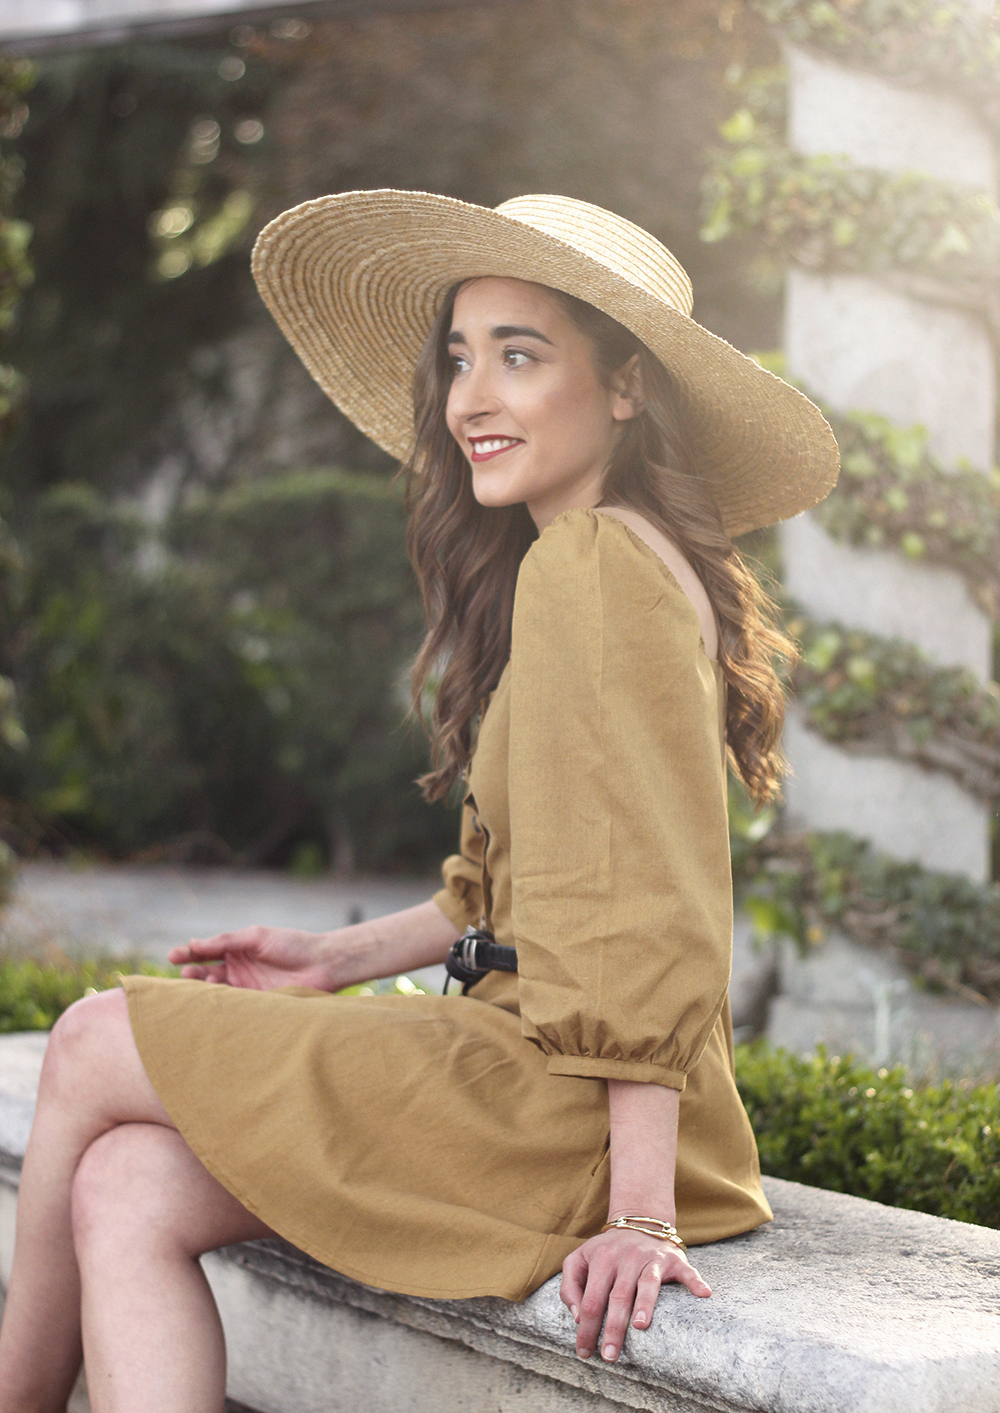 khaki linen dress black sandals straw hat street style spring outfit6